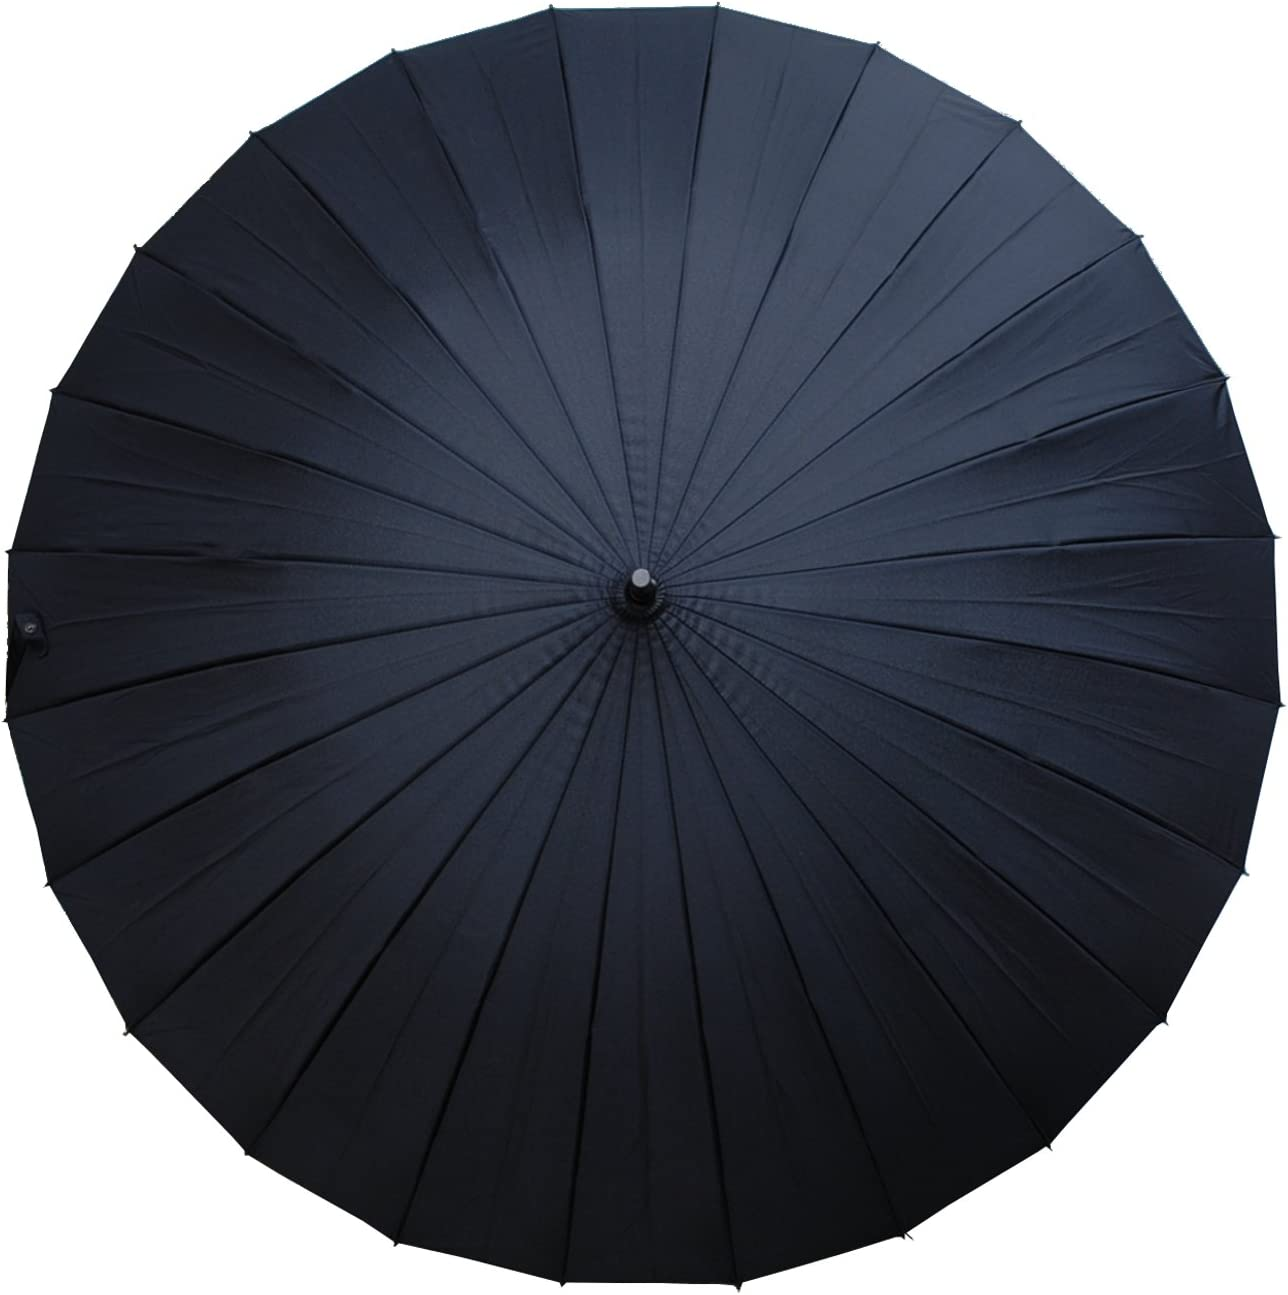 Black Solid Wood Hook Handle Windproof 60MPH Umbrella COLLAR AND CUFFS LONDON Automatic 24 Ribs EXTRA STRONG